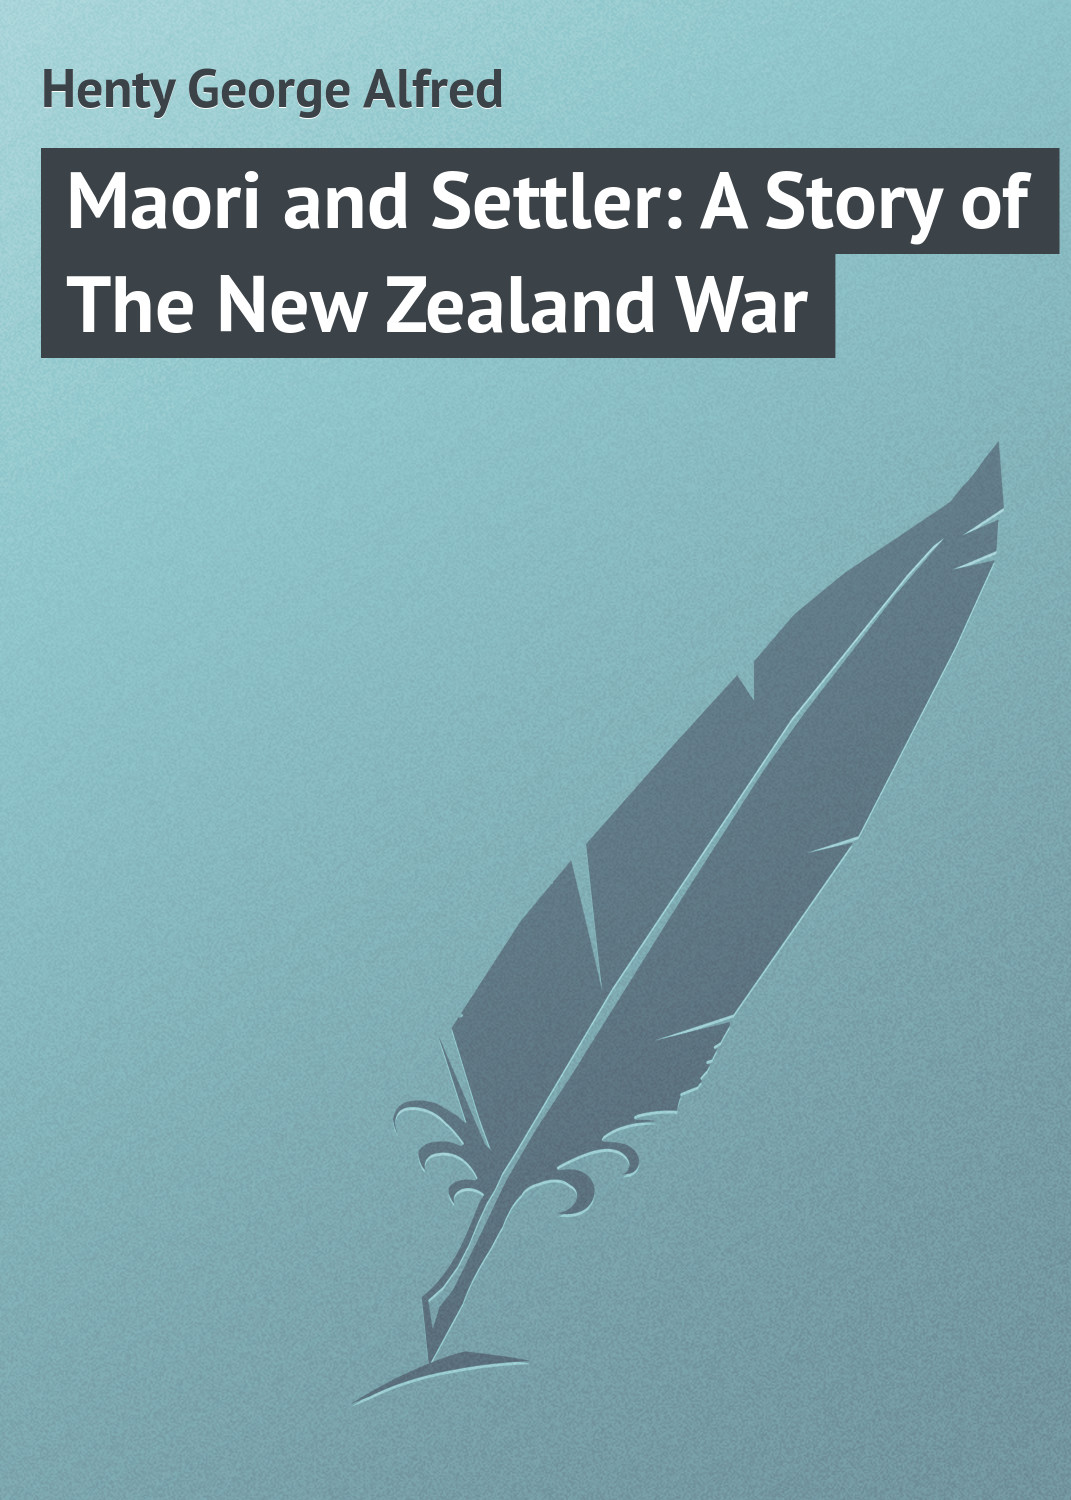 лучшая цена Henty George Alfred Maori and Settler: A Story of The New Zealand War